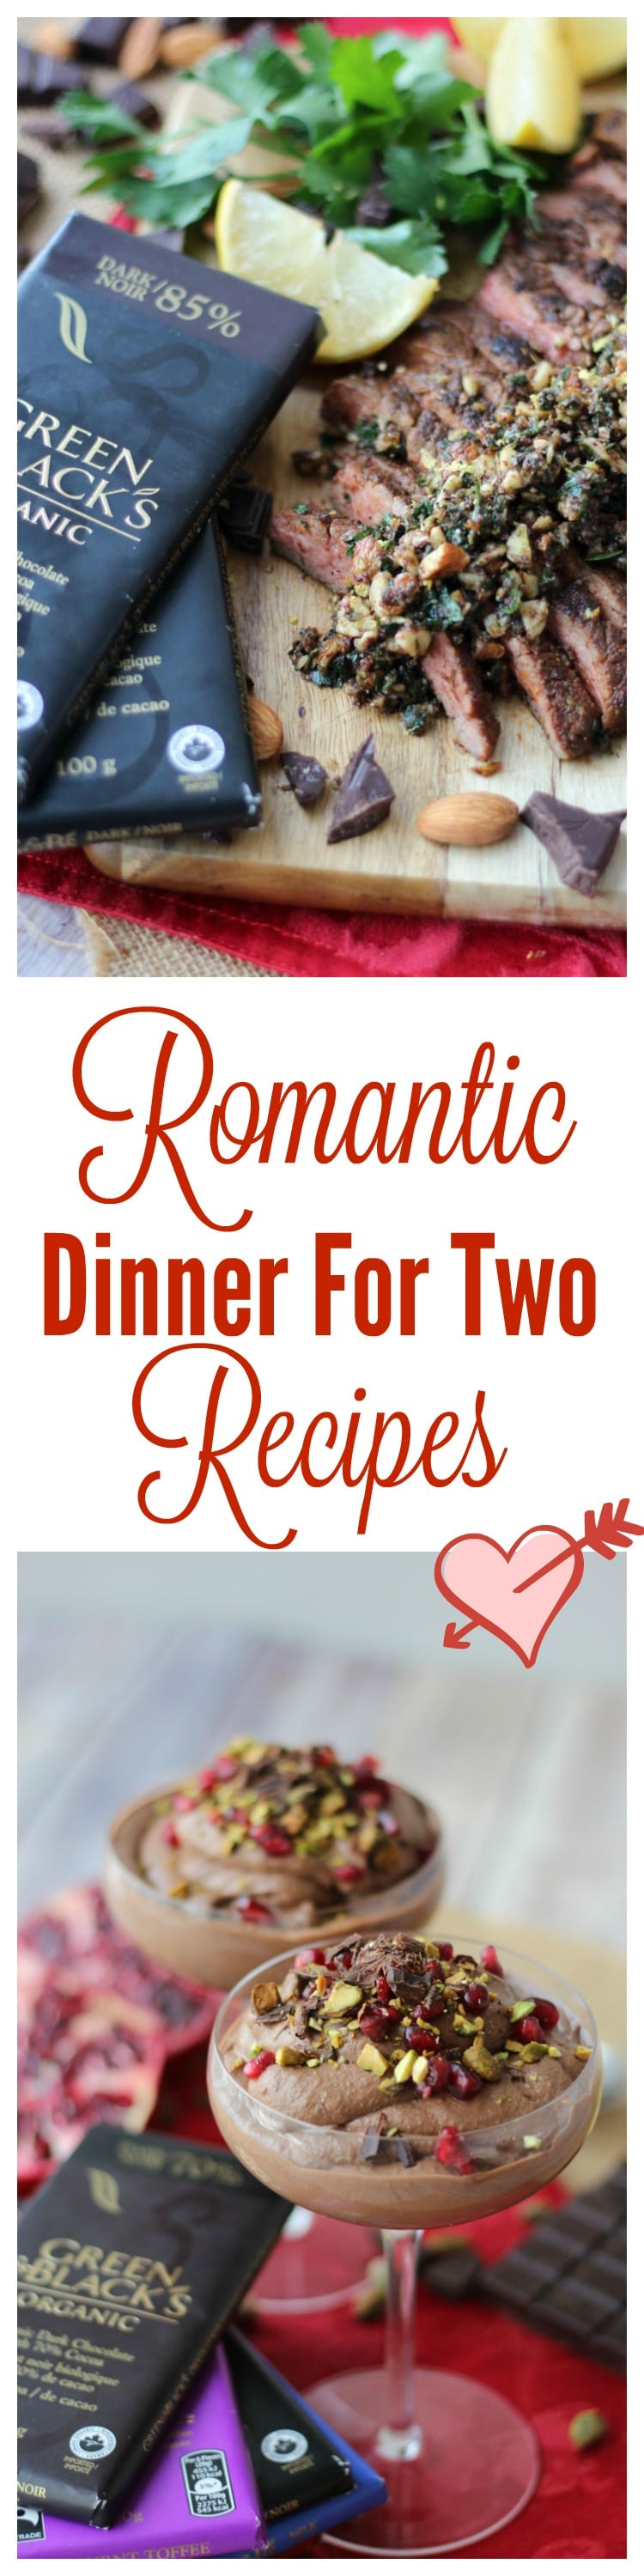 Romantic Dinner For Two Recipes